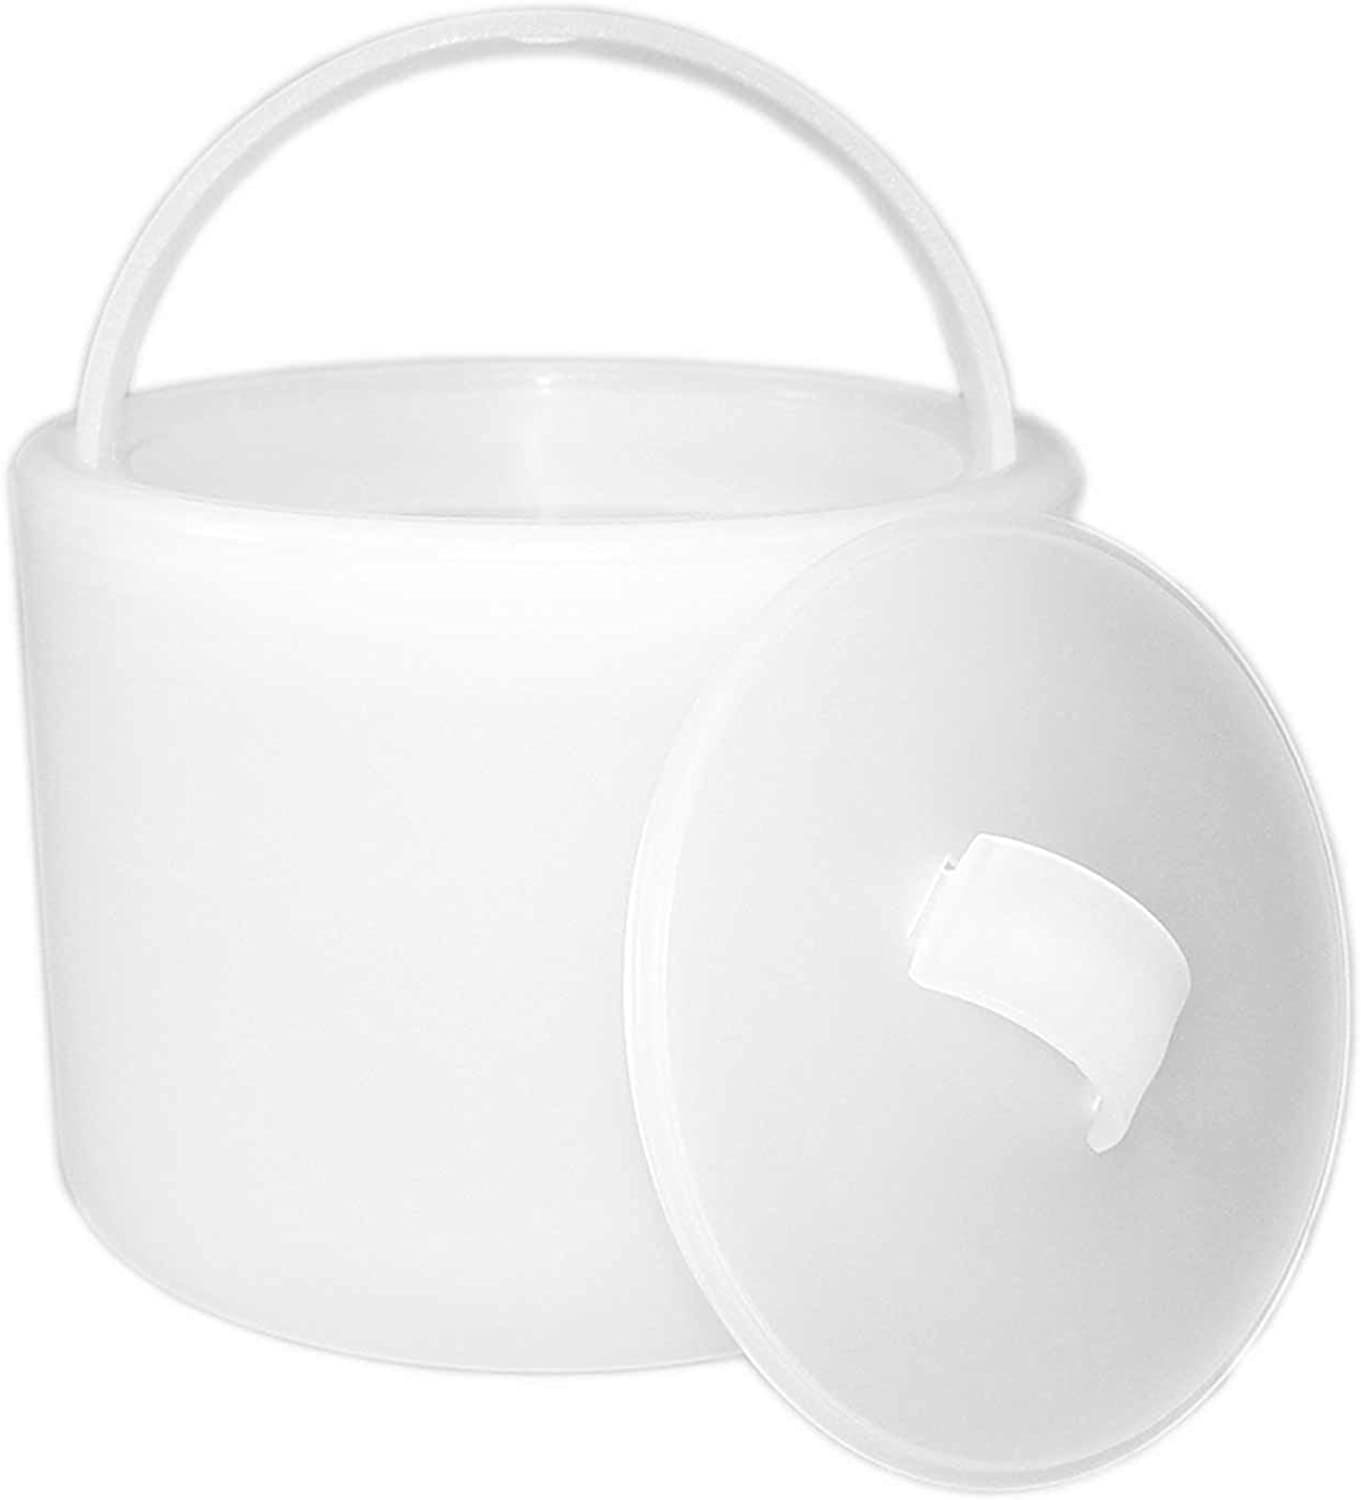 mejor precio Party Essentials Hard Plastic Plastic Plastic 6-1 2 Ice Bucket with Lid, Translucent by Party Essentials  buena reputación